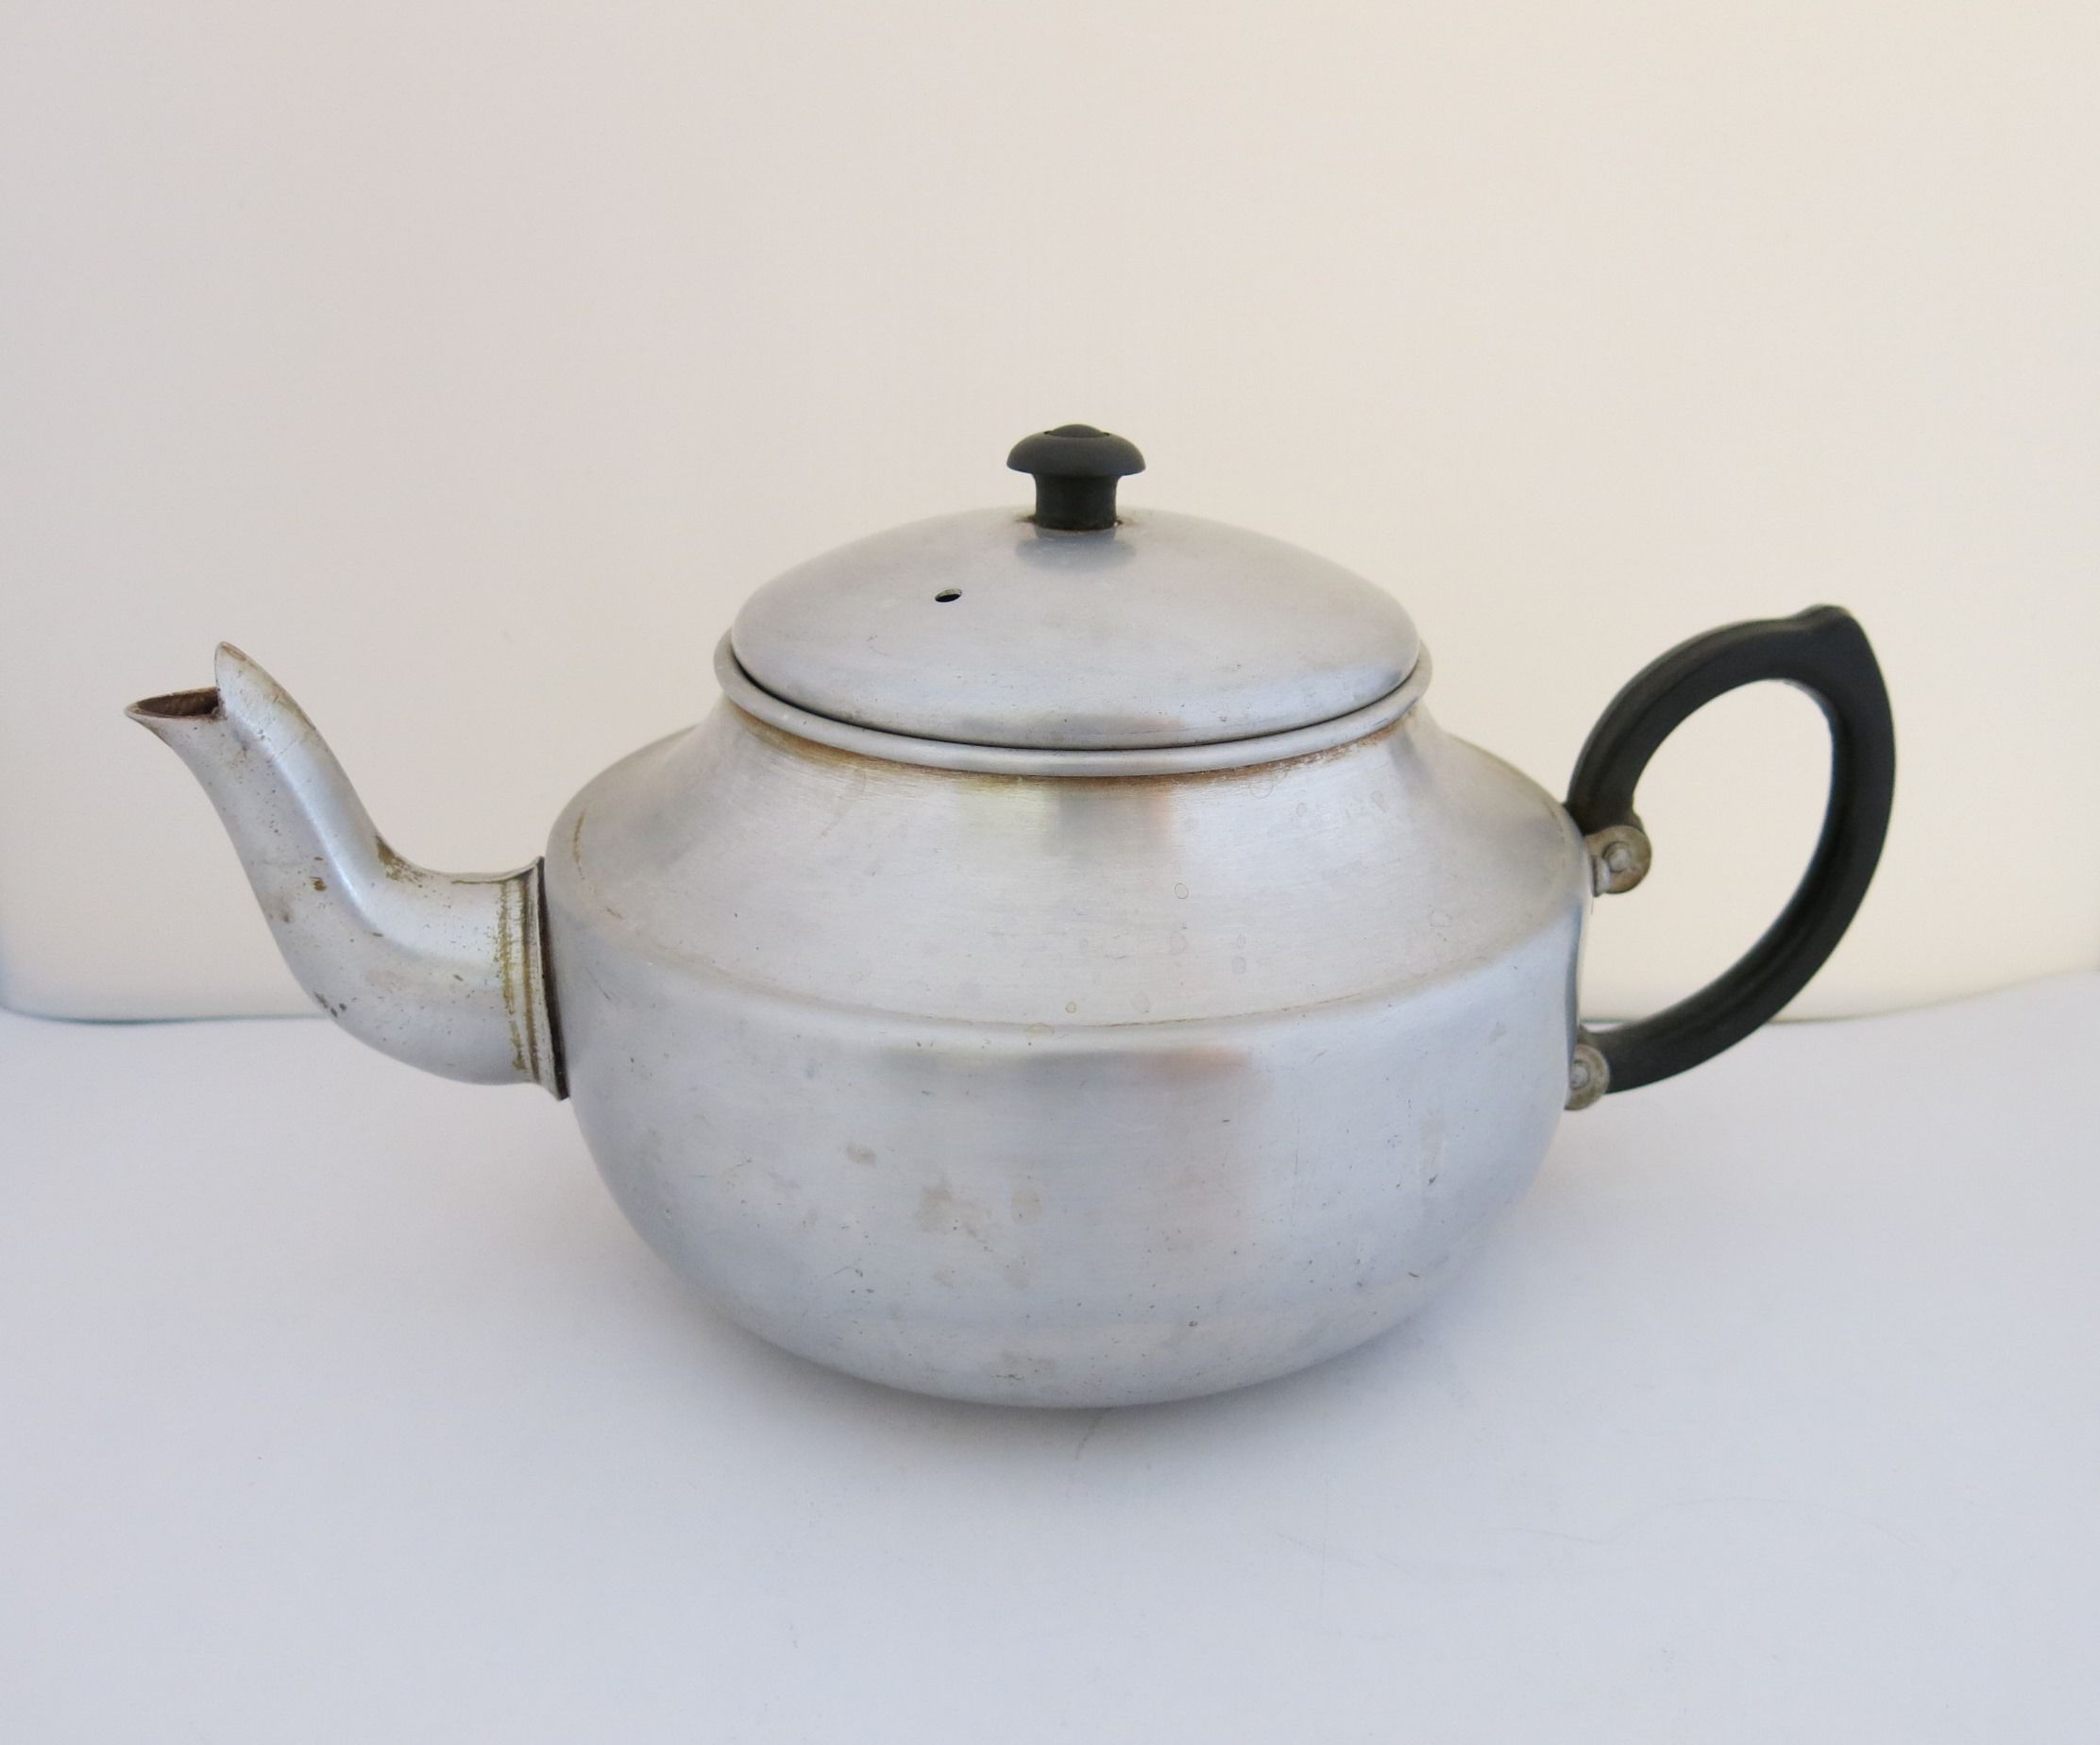 Looking For Teapots Standard Aluminium Teapot I Found In An Opp Shop For 1